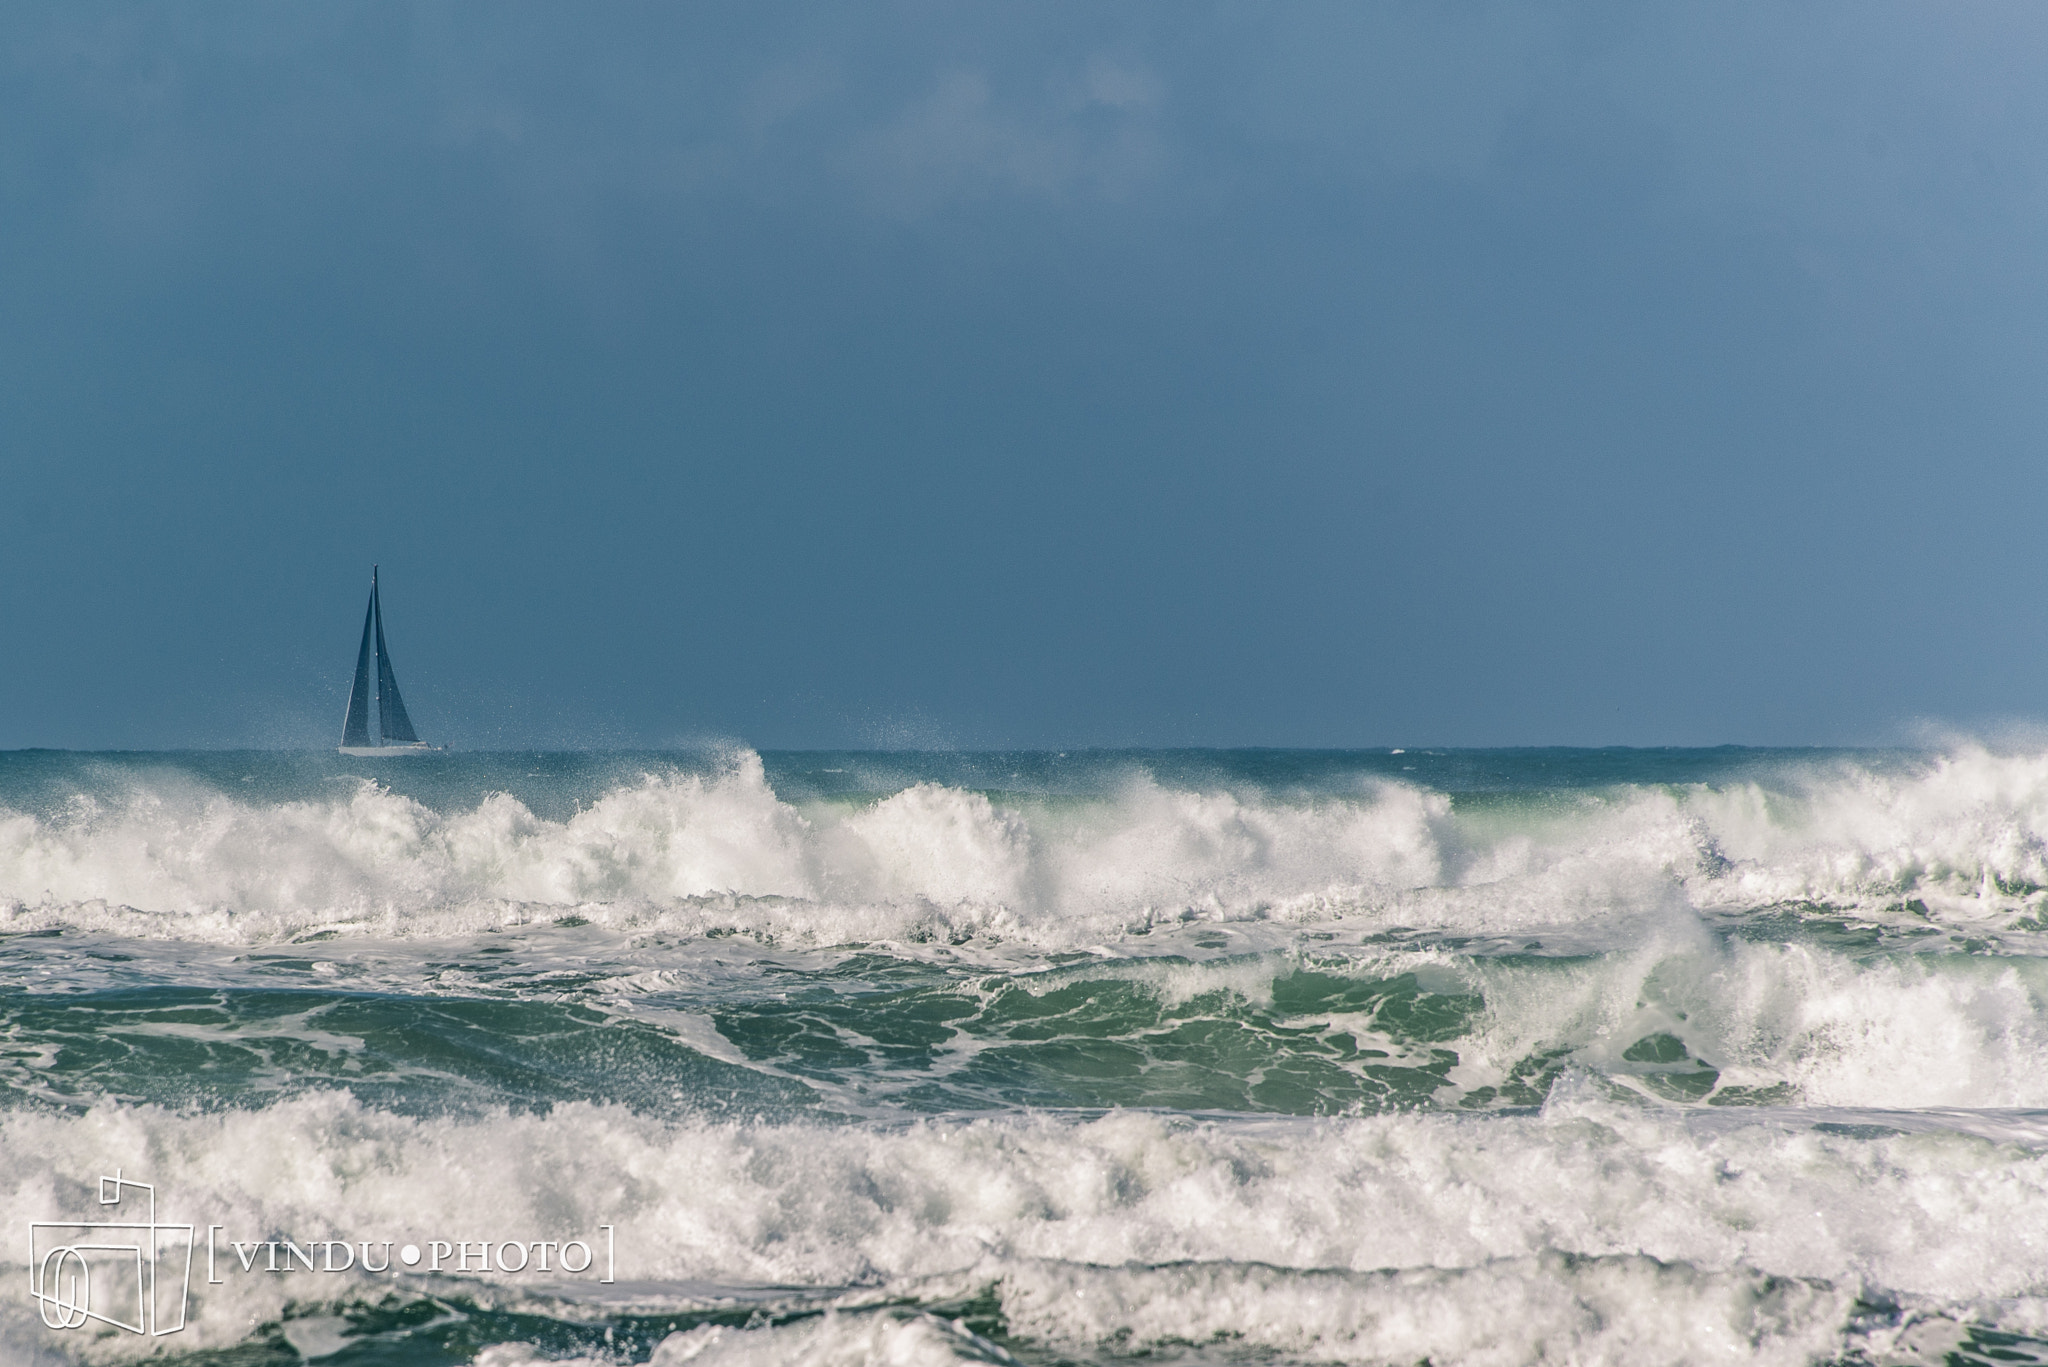 Photograph sailing in troubled waters by Vit Vitali vinduPhoto on 500px